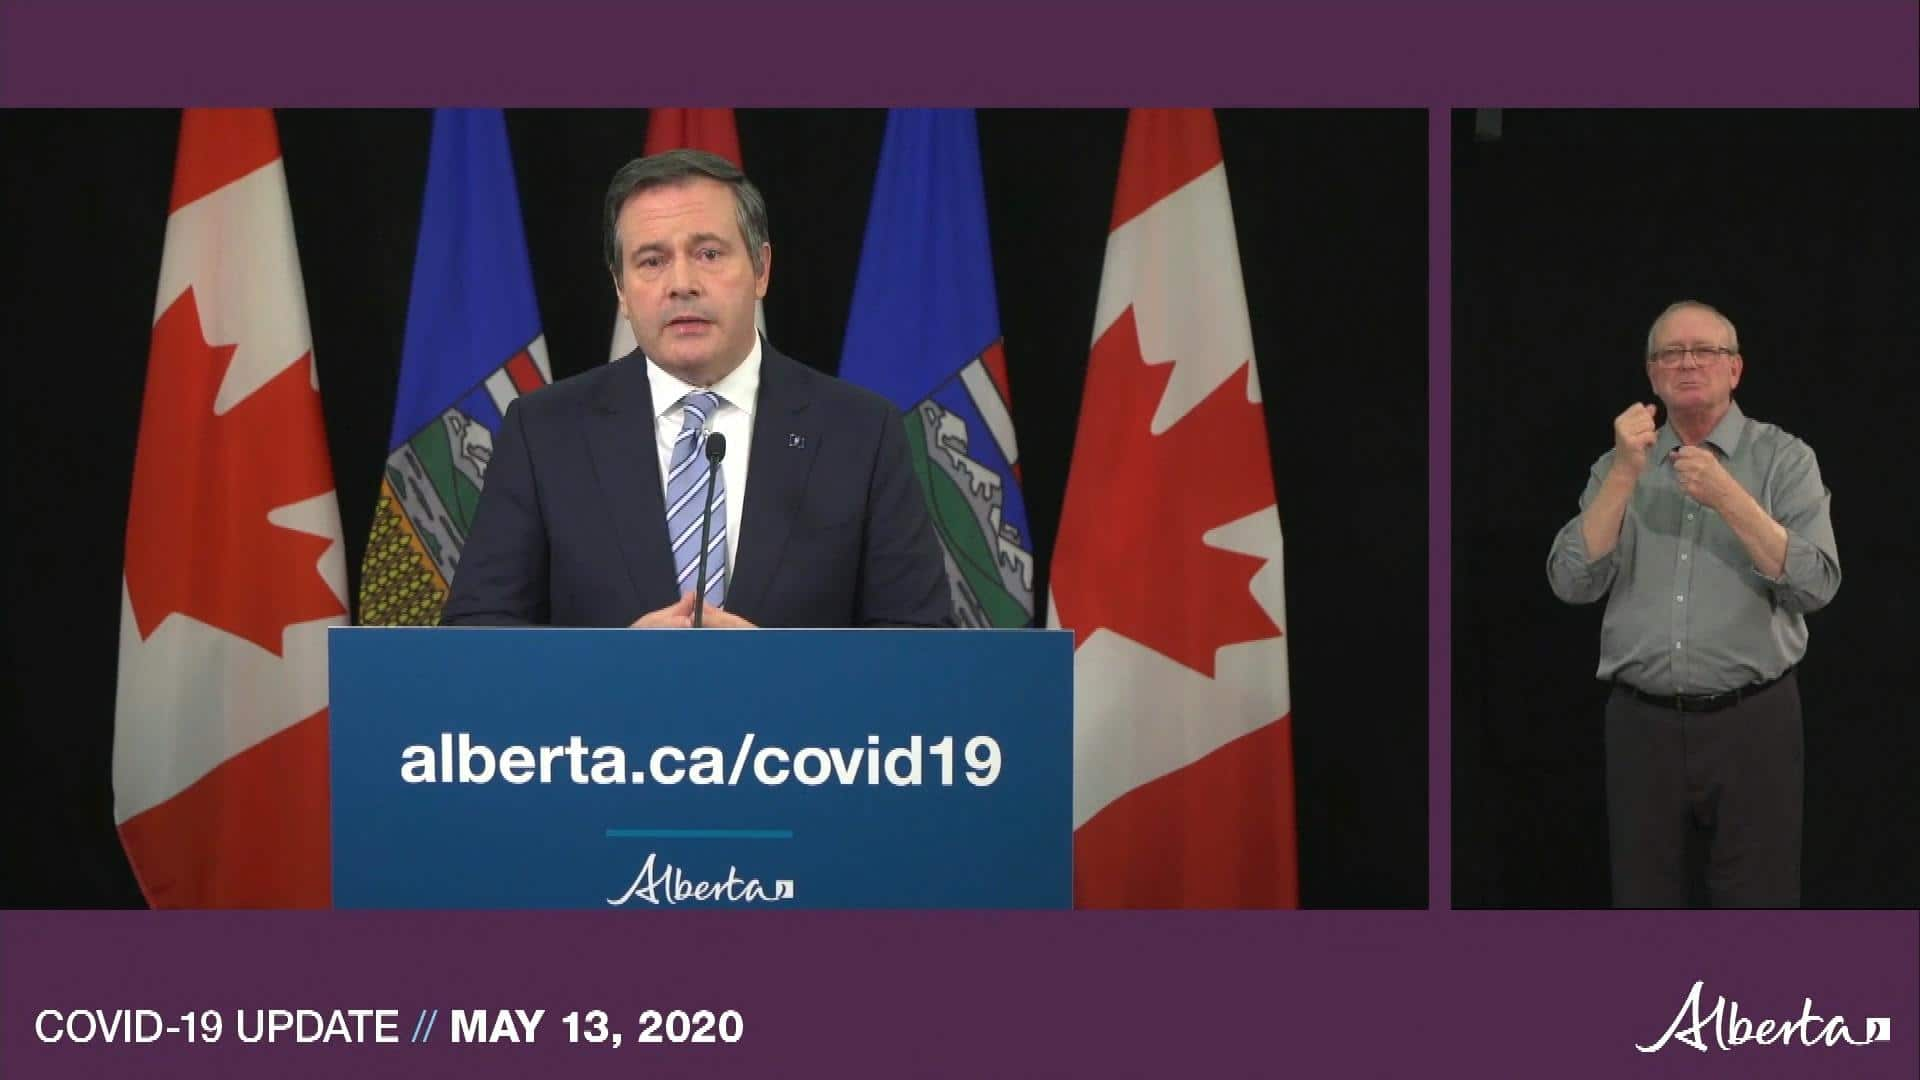 Alberta To Relaunch Thursday But Covid 19 Restrictions To Remain For Calgary Brooks Kenney Cbc News